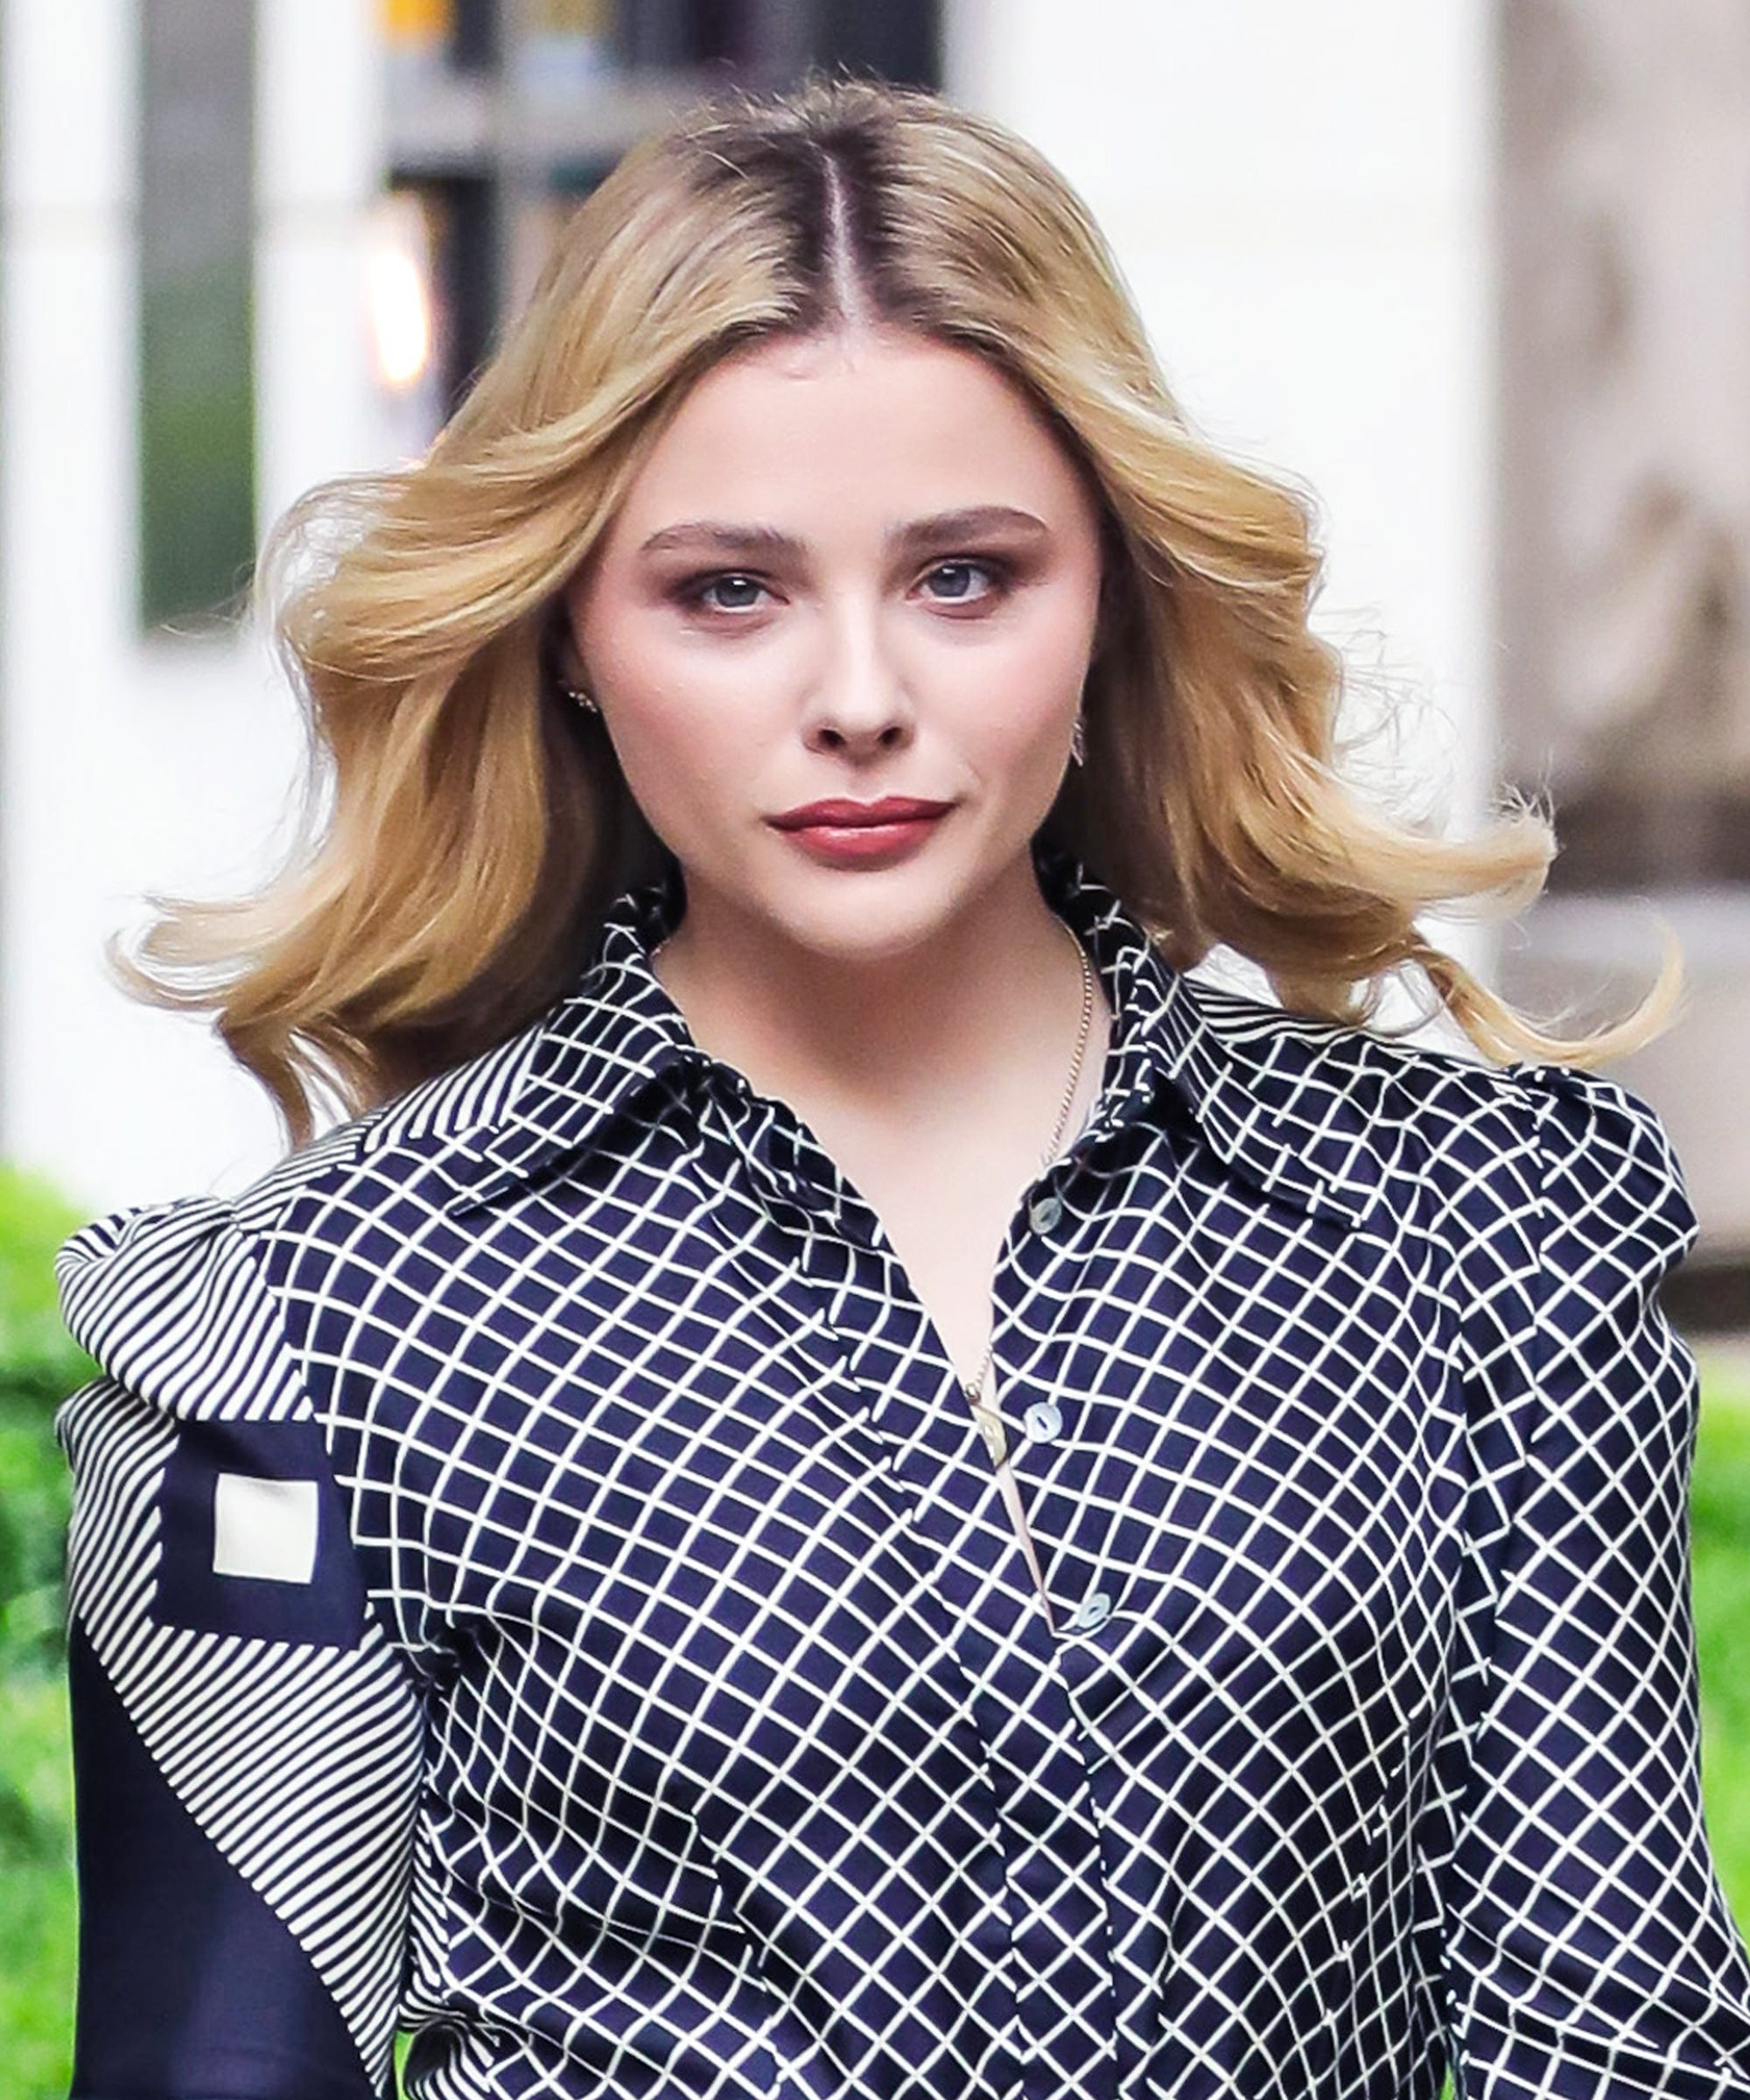 """Chloë Grace Moretz Has """"Distanced"""" Herself From Writer Accused Of Sexual Misconduct"""